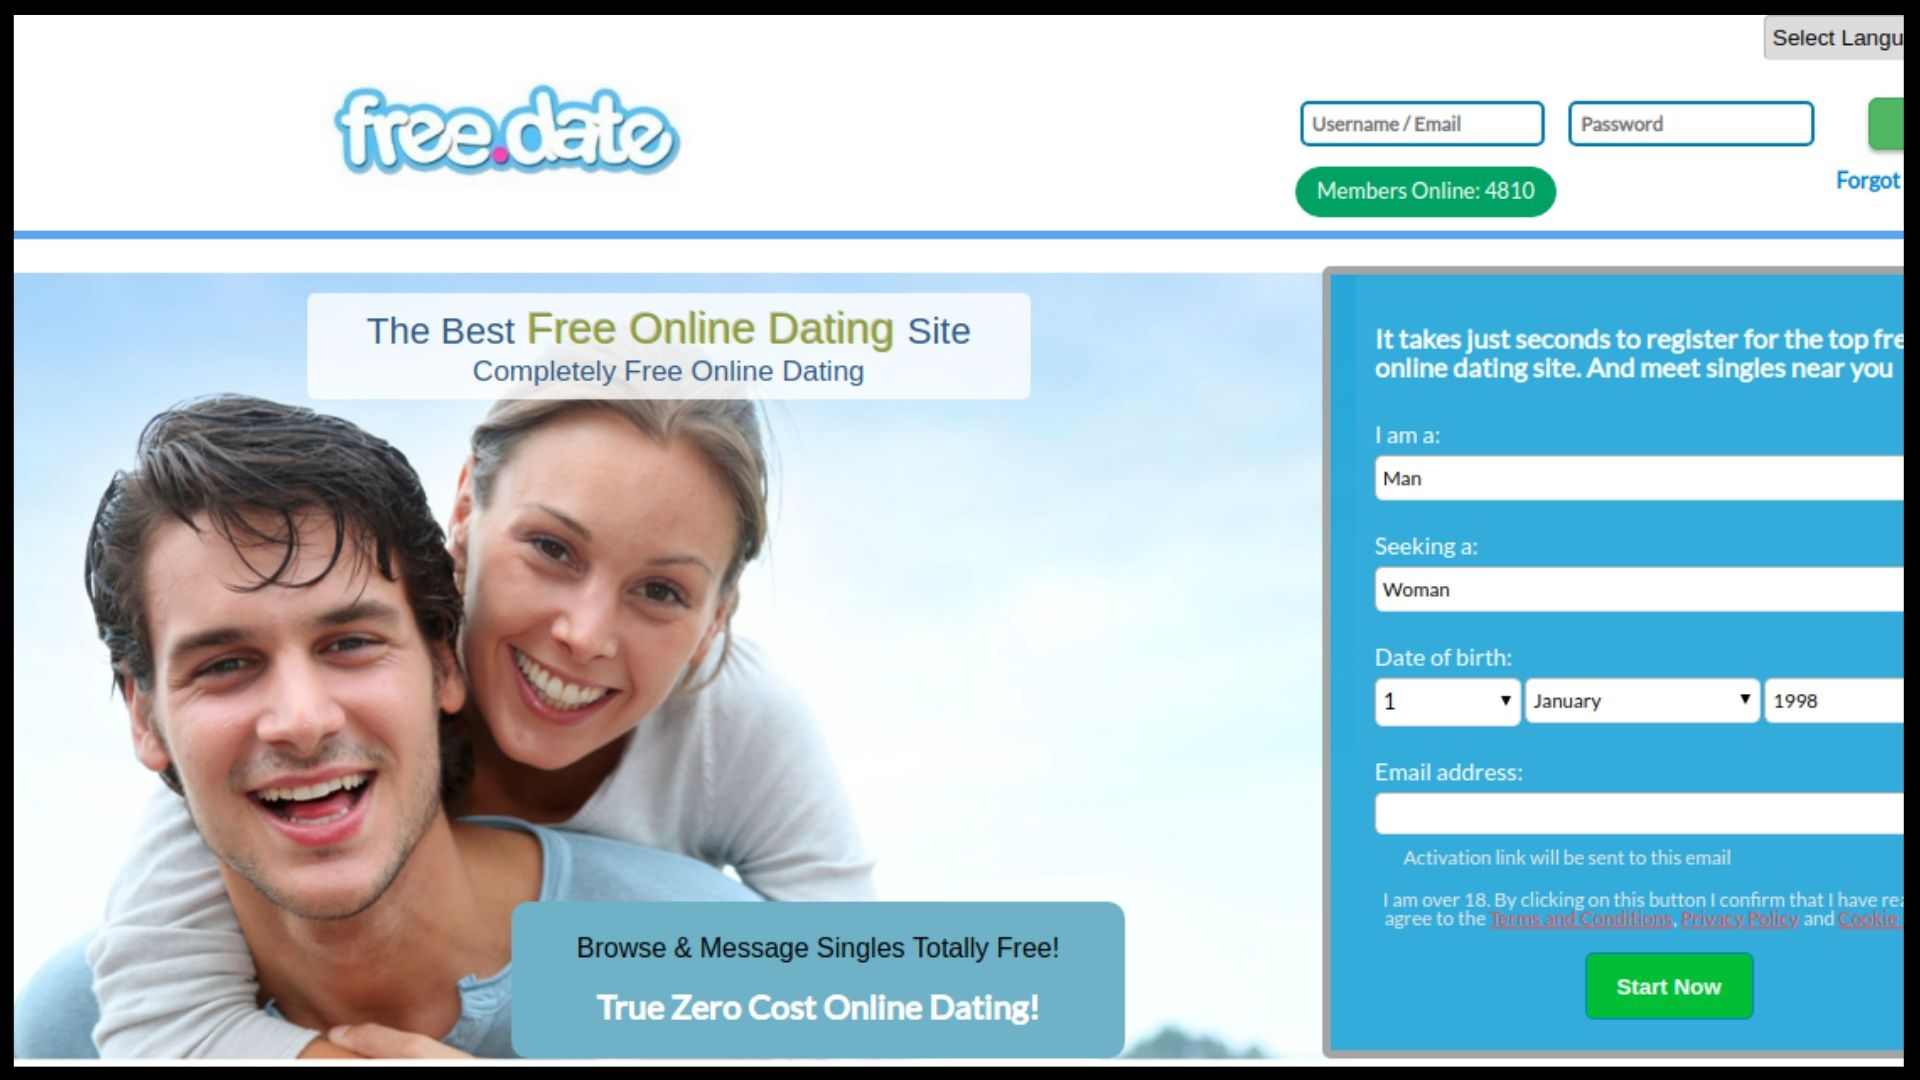 Free.Date Reviews